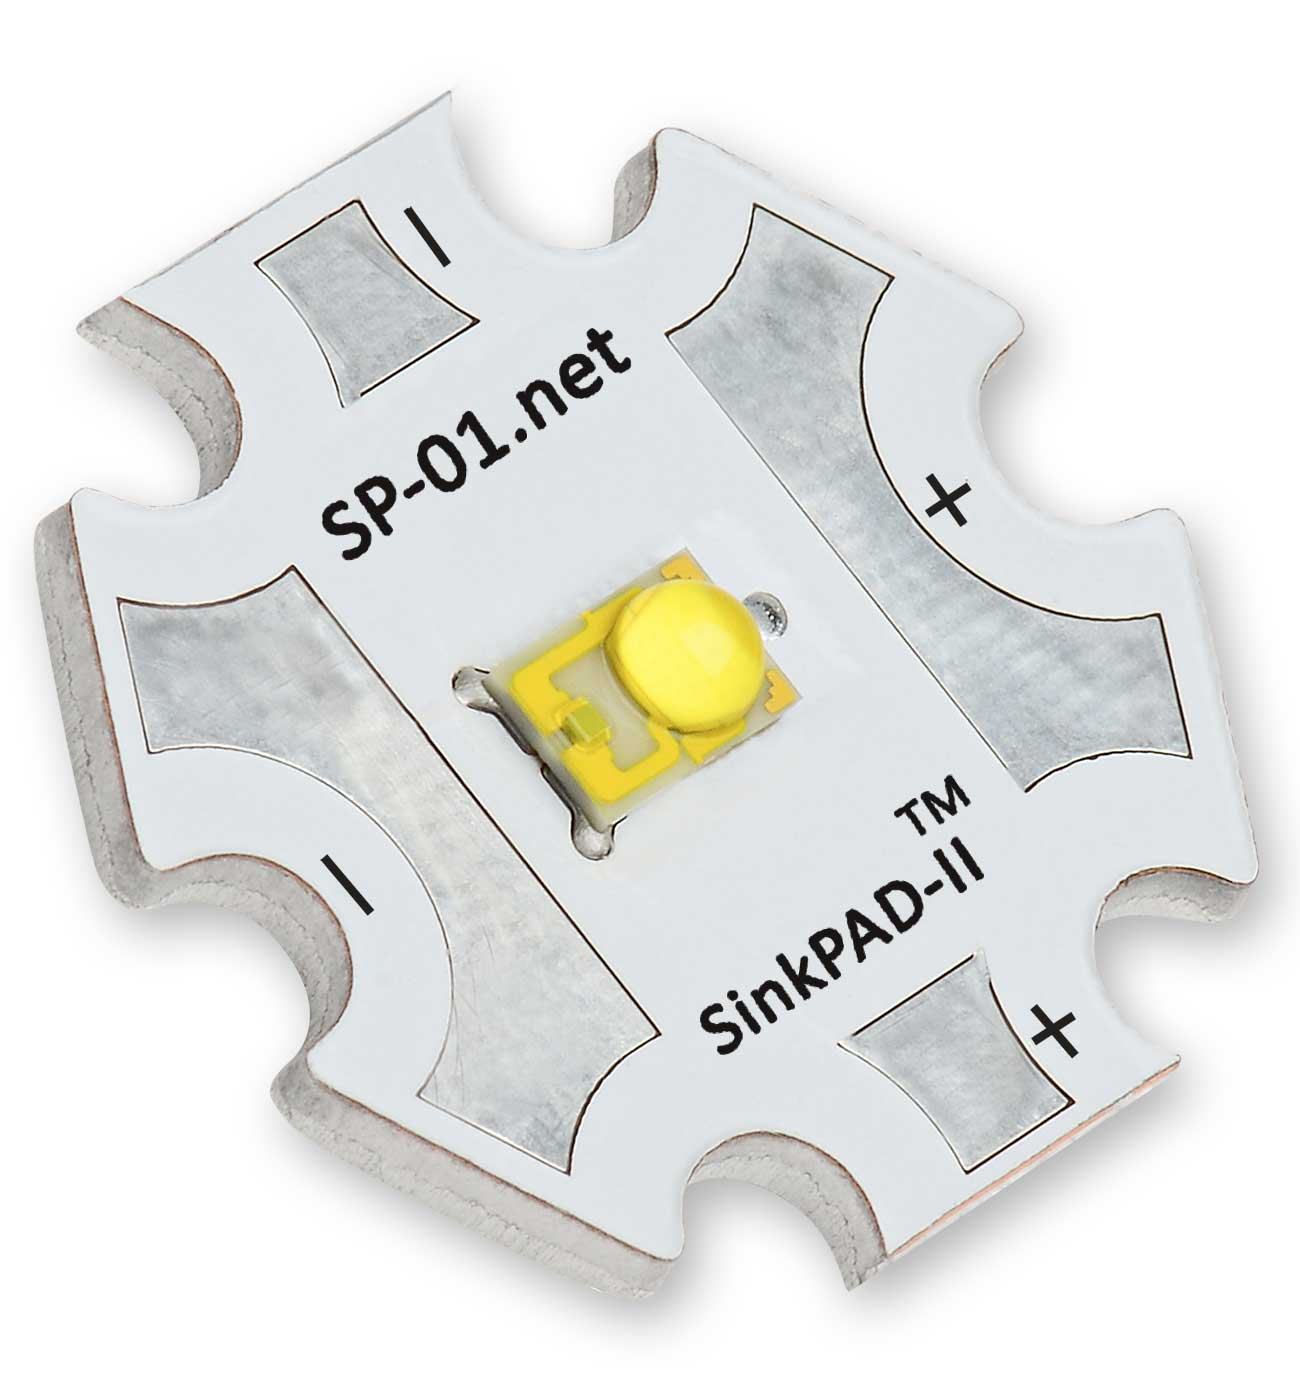 Cyan 505nm Sinkpad Ii Star Led 76 Lm Zxsc400 In The Luxeon High Powered And Datasheet Sp 01 C2 Module Features A Single Lxml Pe01 0070 Rebel Soldered To 20mm Base